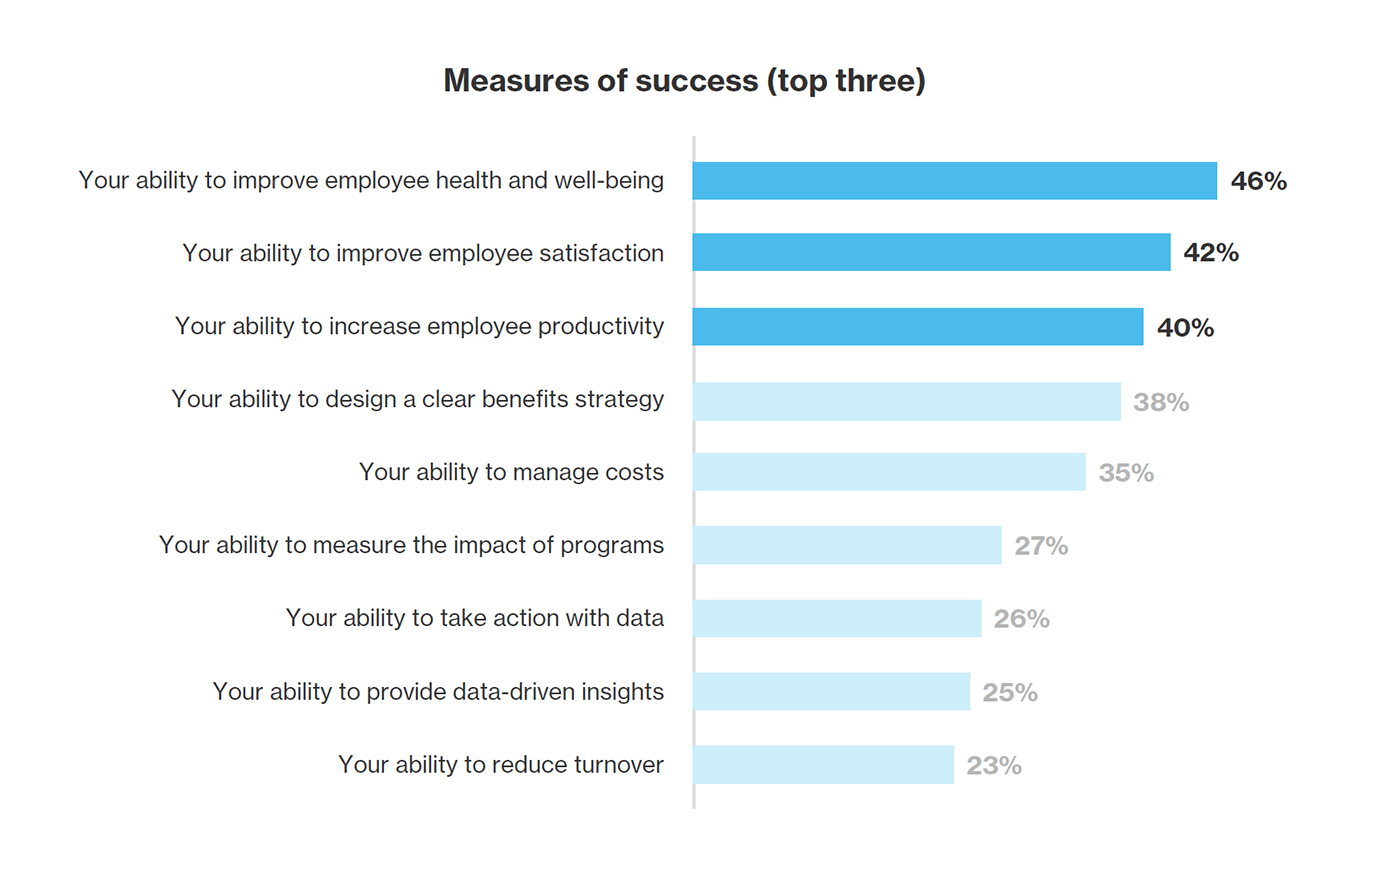 Bar chart showing the top three measures of success for benefits leaders.